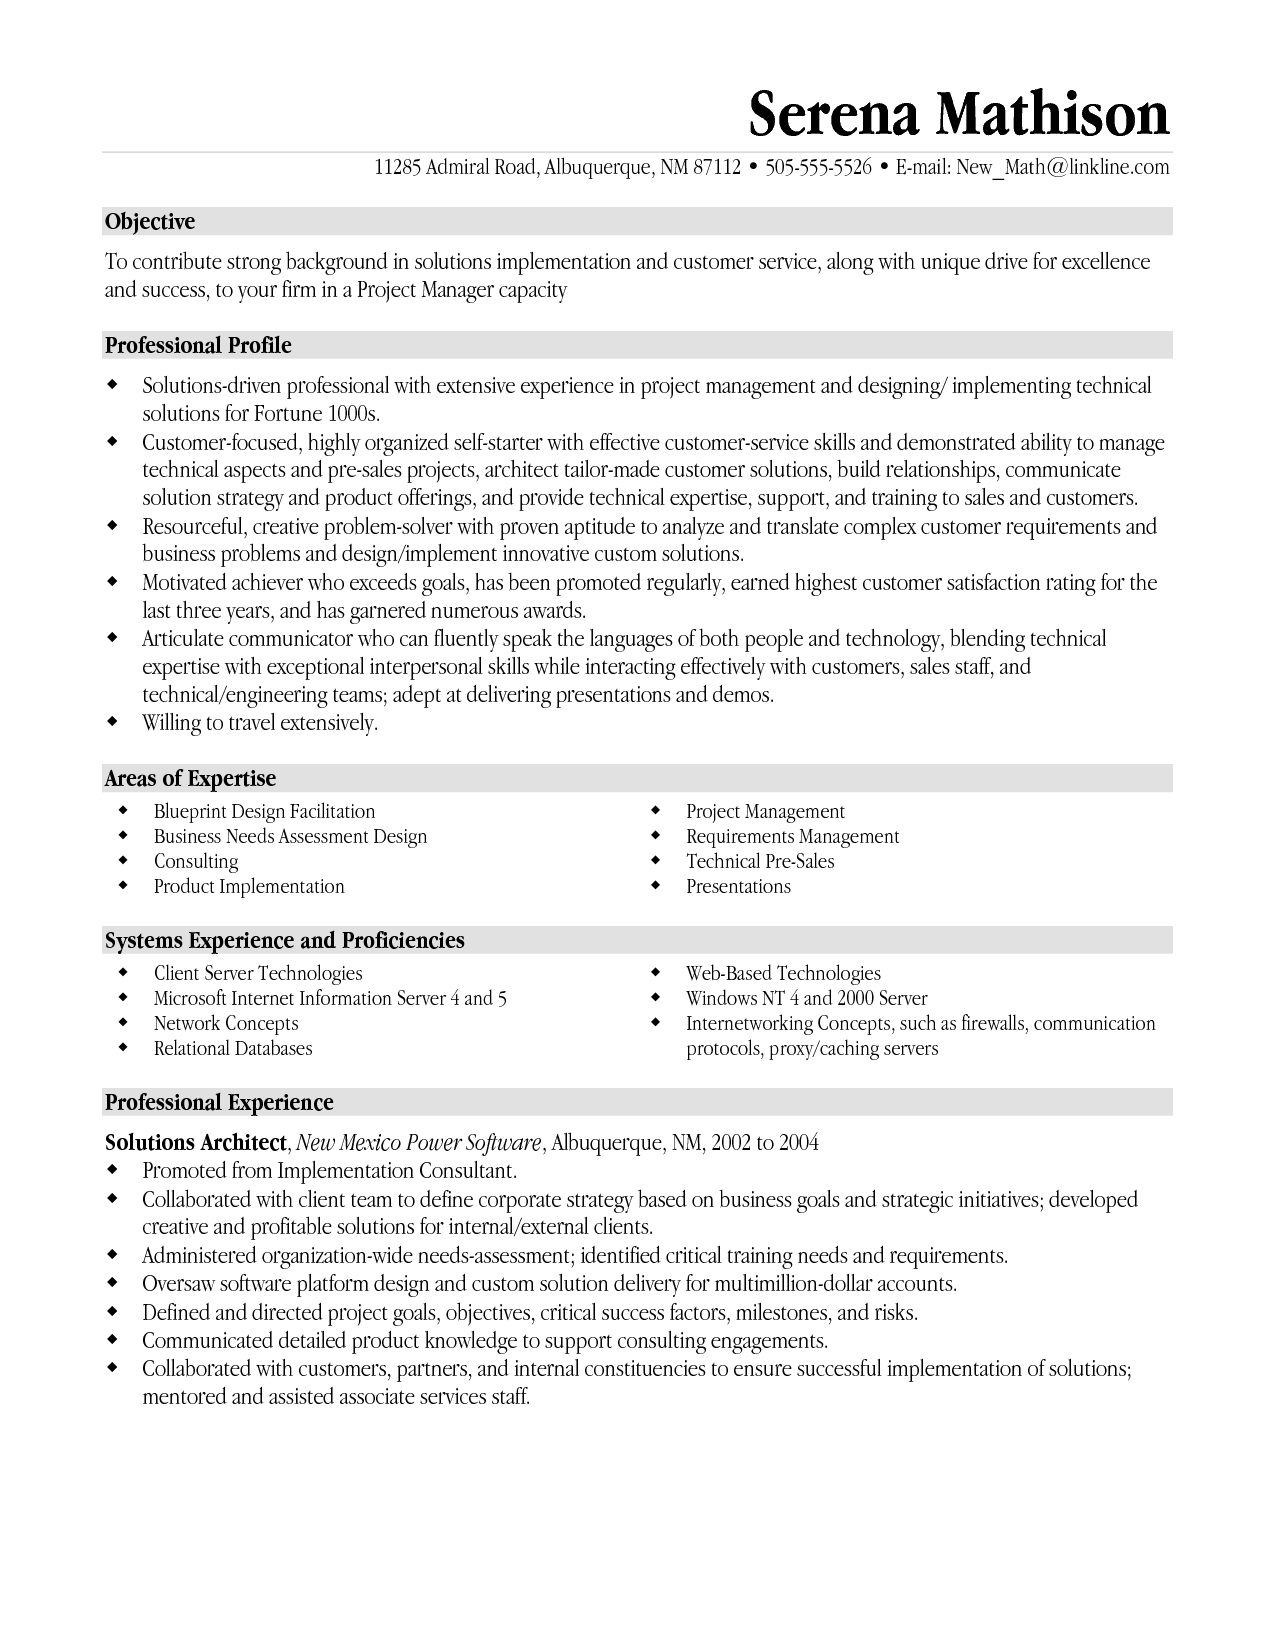 resume template manager objective